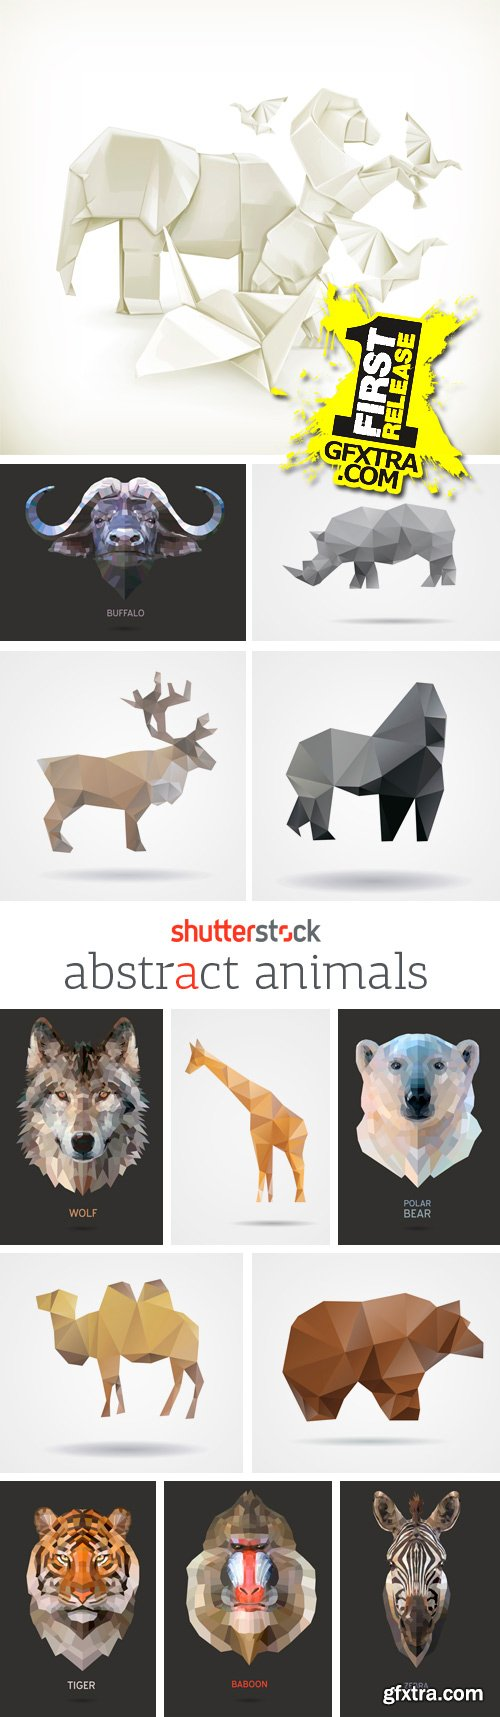 Amazing SS - Abstract Animals, 25xEPS